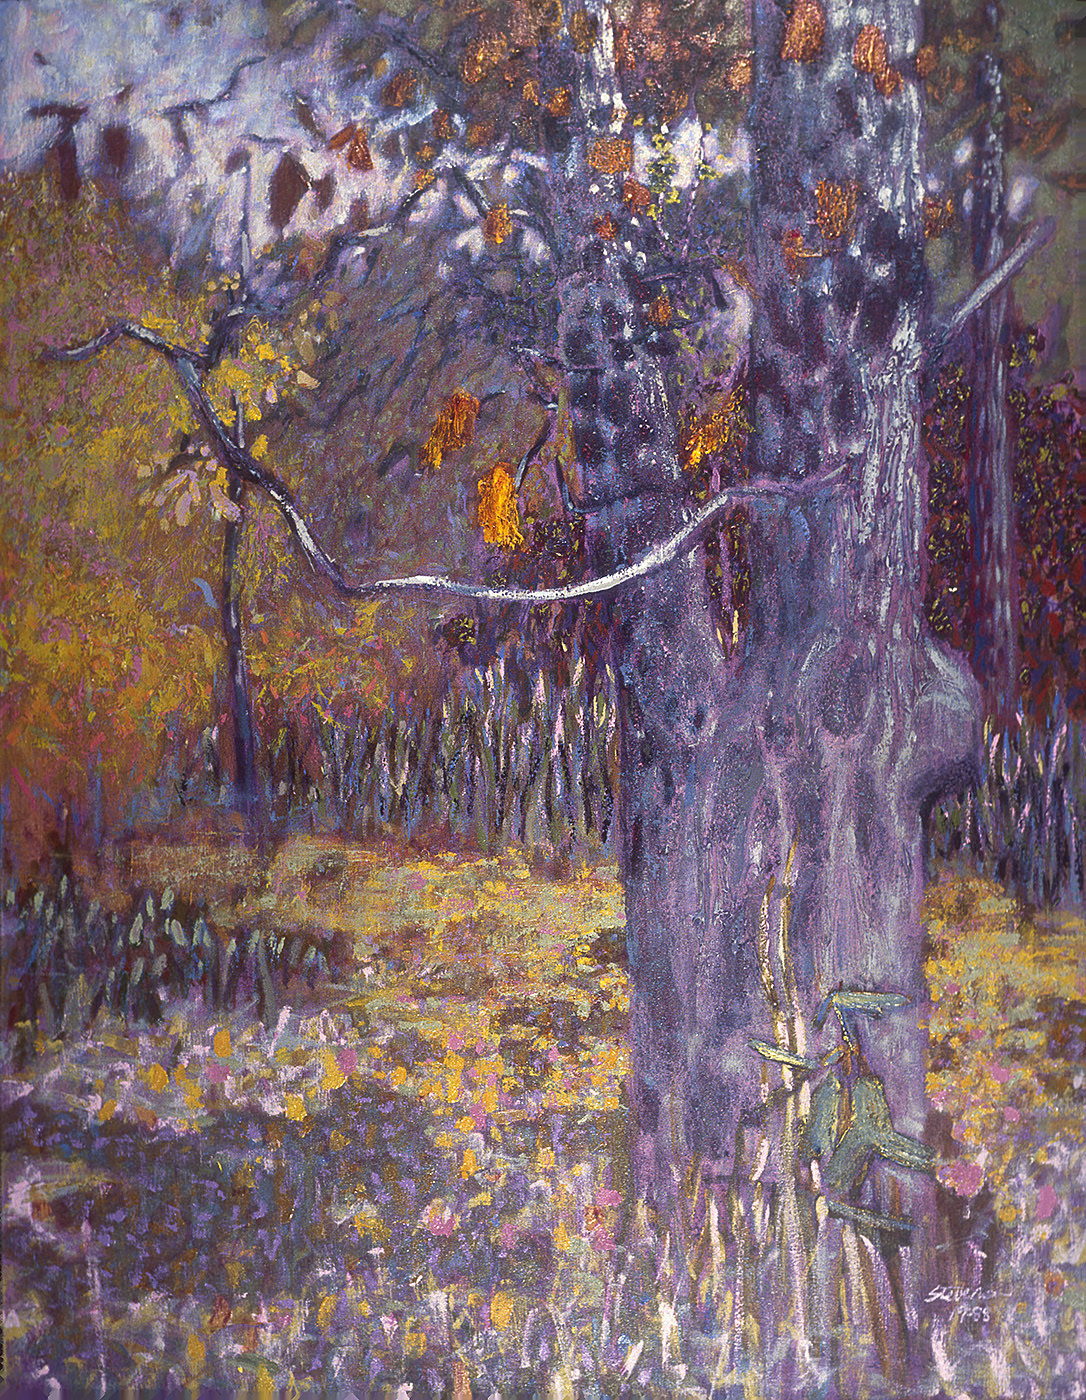 Autumn Oak  | oil on canvas | 55 x 43"